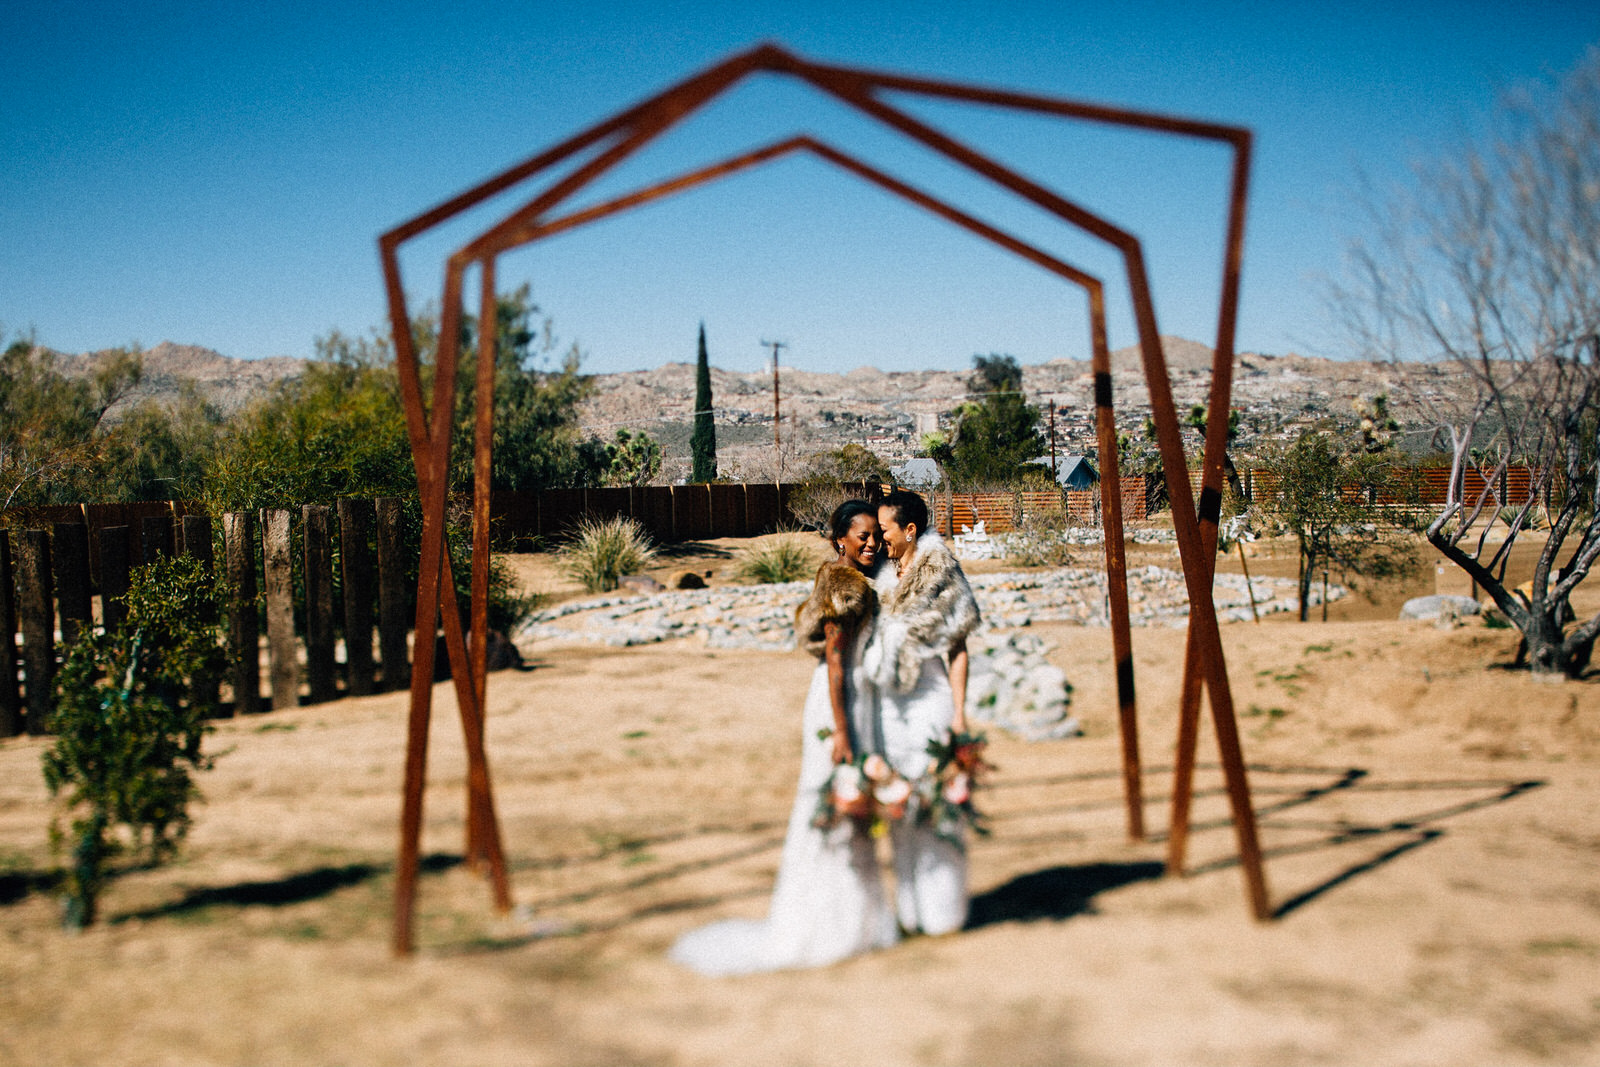 palm springs joshua tree elopement wedding styled shoot fuck yeah weddings feminist photo vaycay kendall lauren shea floral table arch alter lesbian lgbtq couple of color seattle photographer